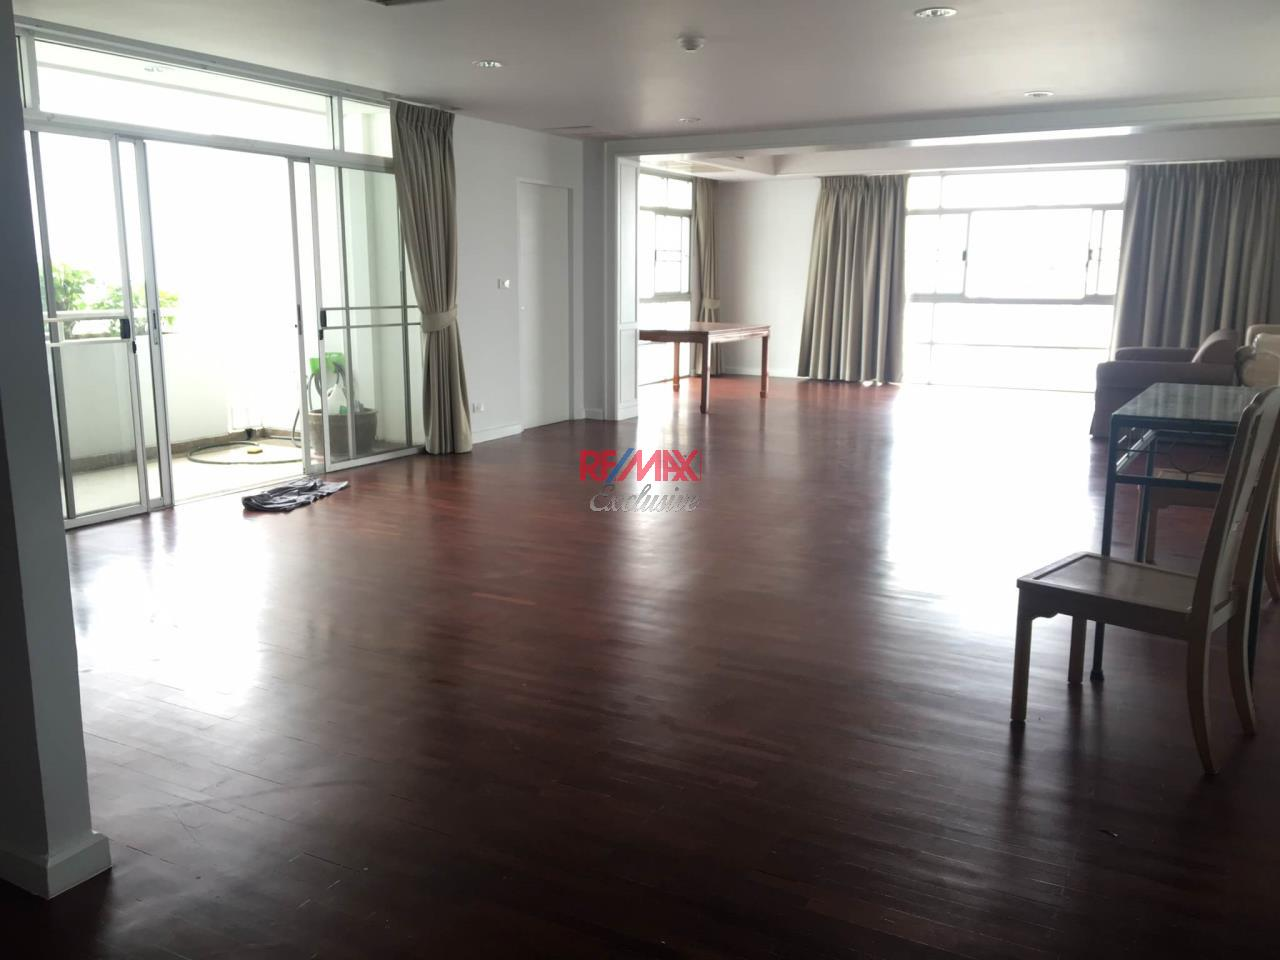 RE/MAX Exclusive Agency's Duplex Penthouse 3 Bedroom for Sale 36M 1